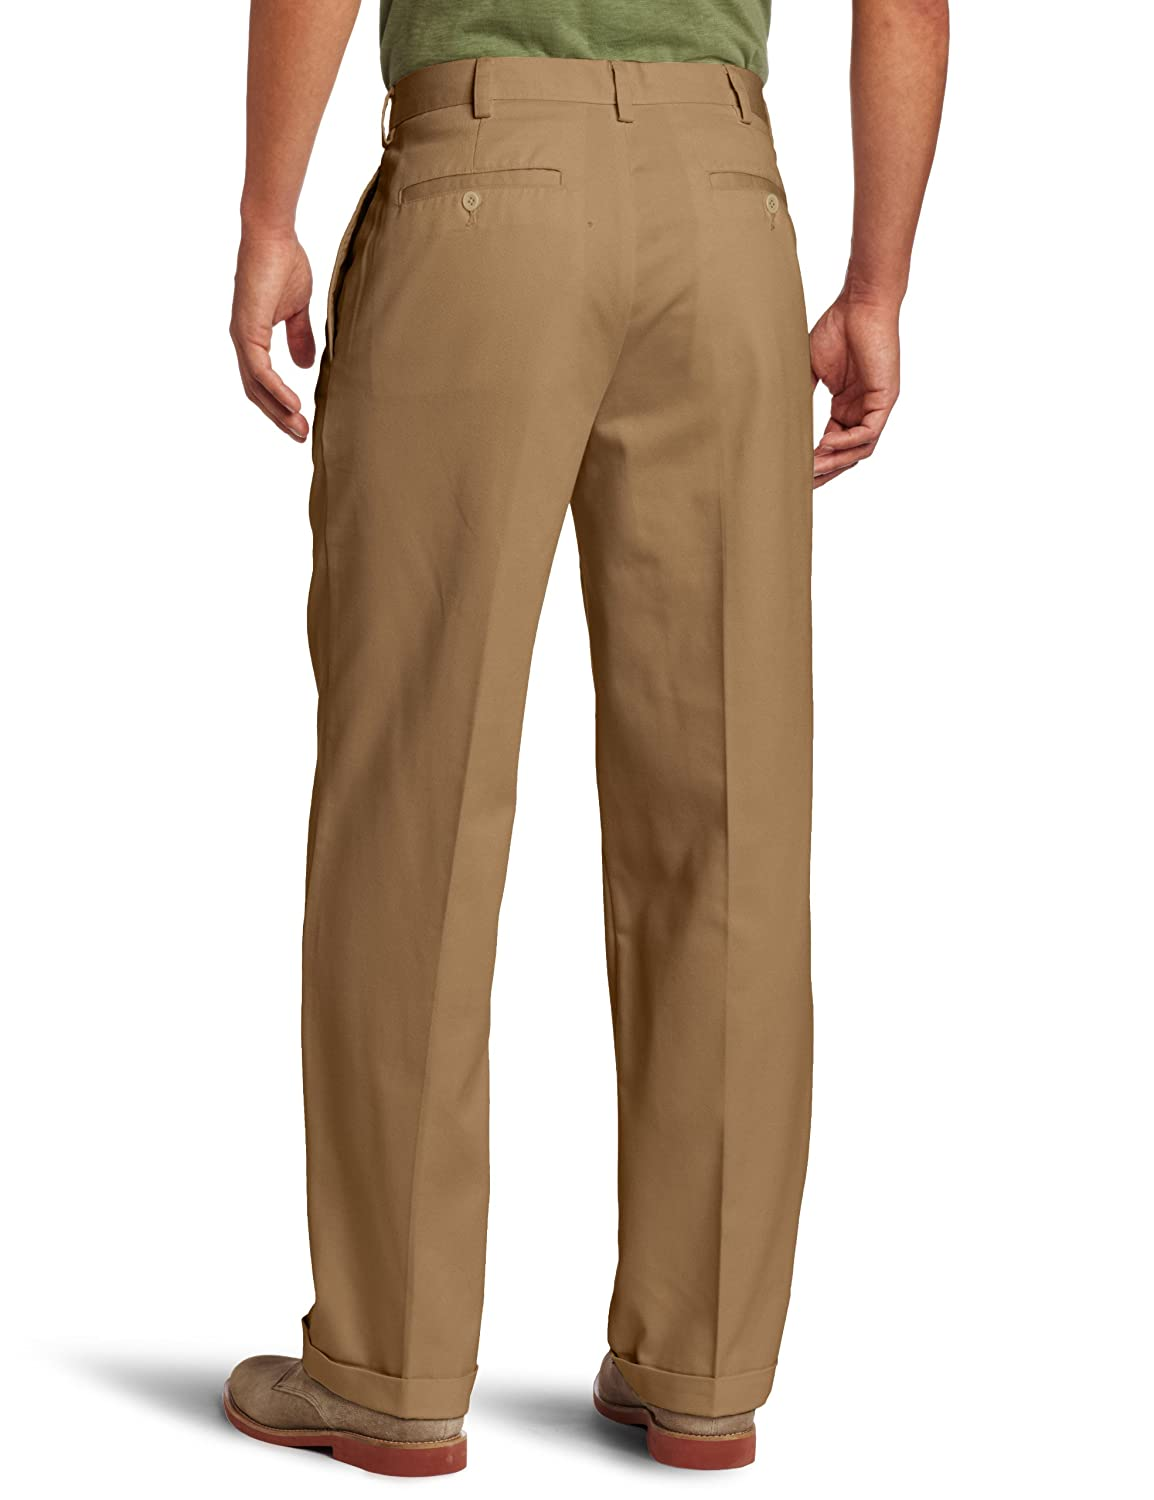 0c3426ce5 IZOD Men's American Chino Pleated Pant at Amazon Men's Clothing store:  Casual Pants